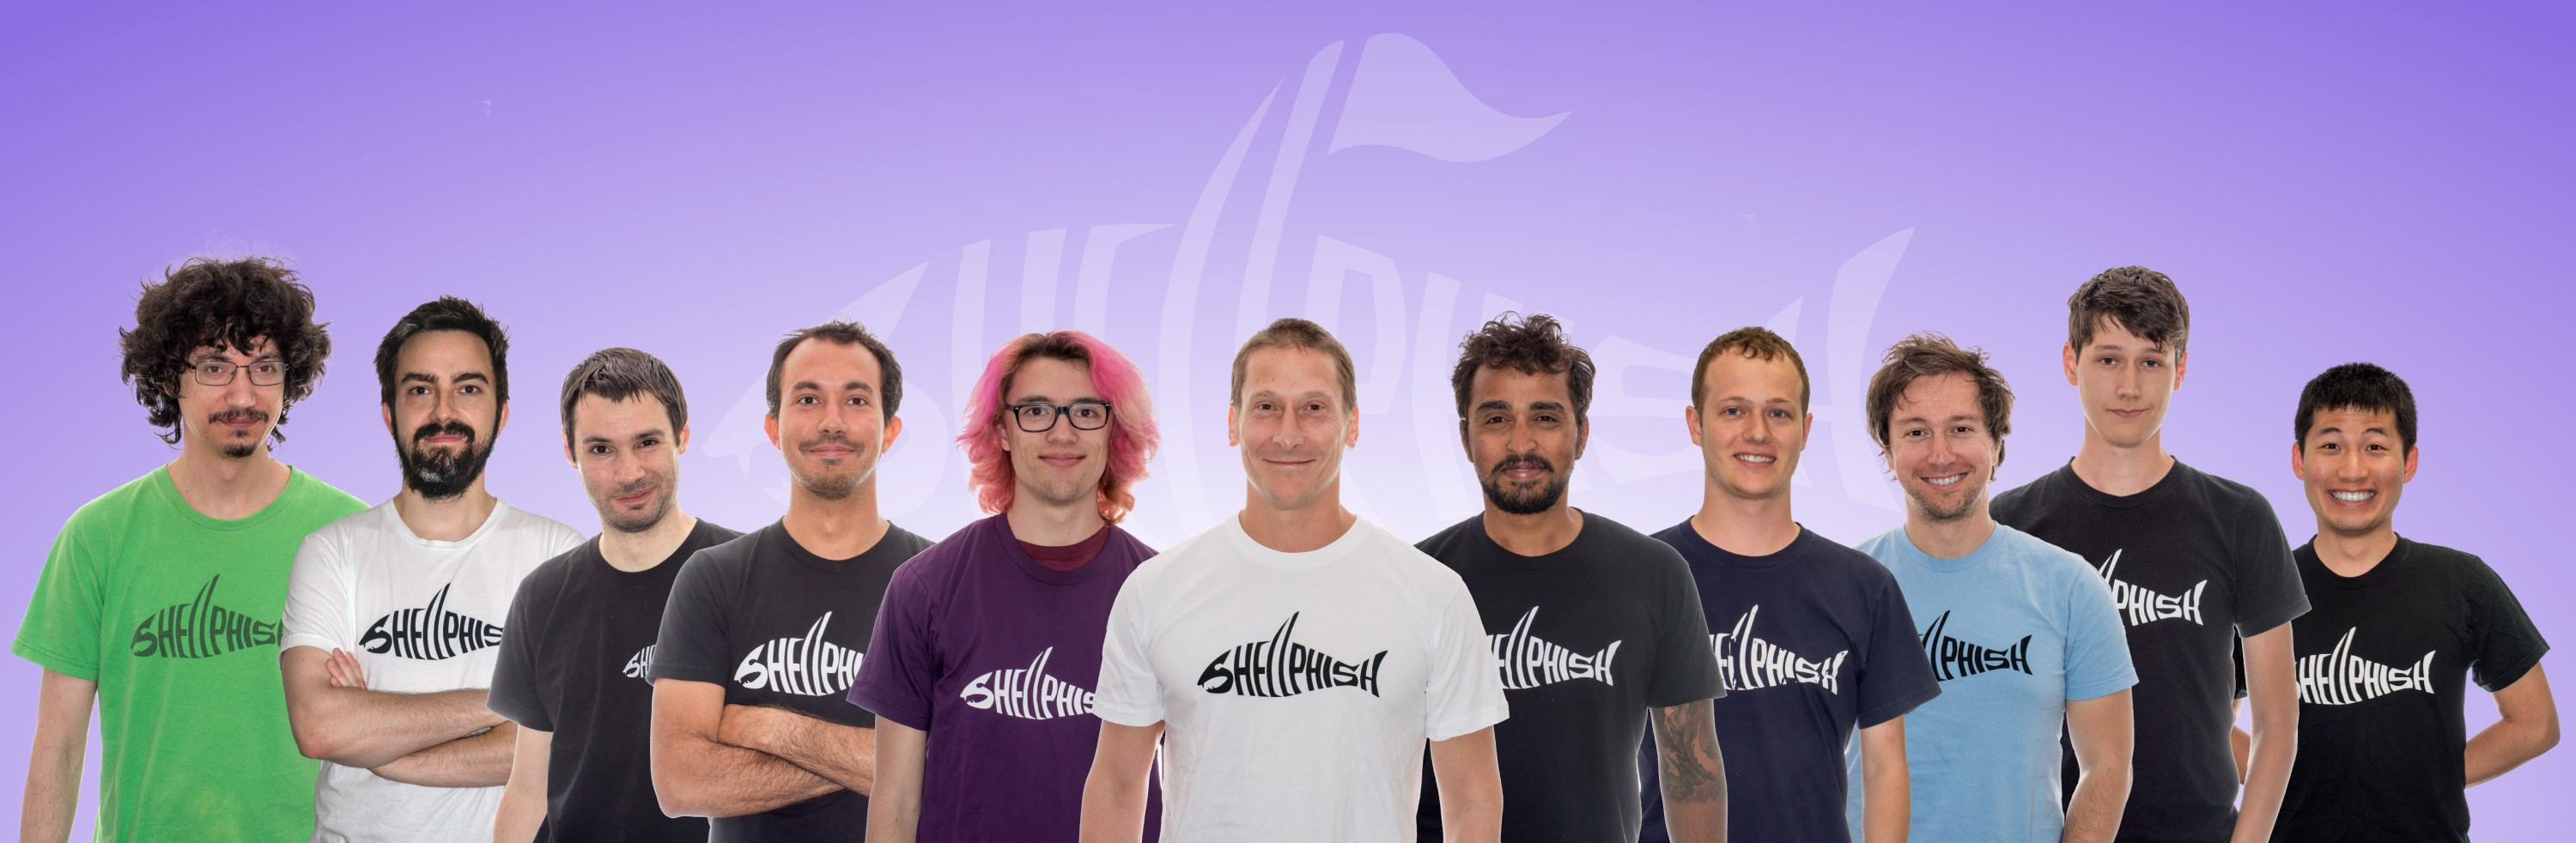 The Shellphish Team